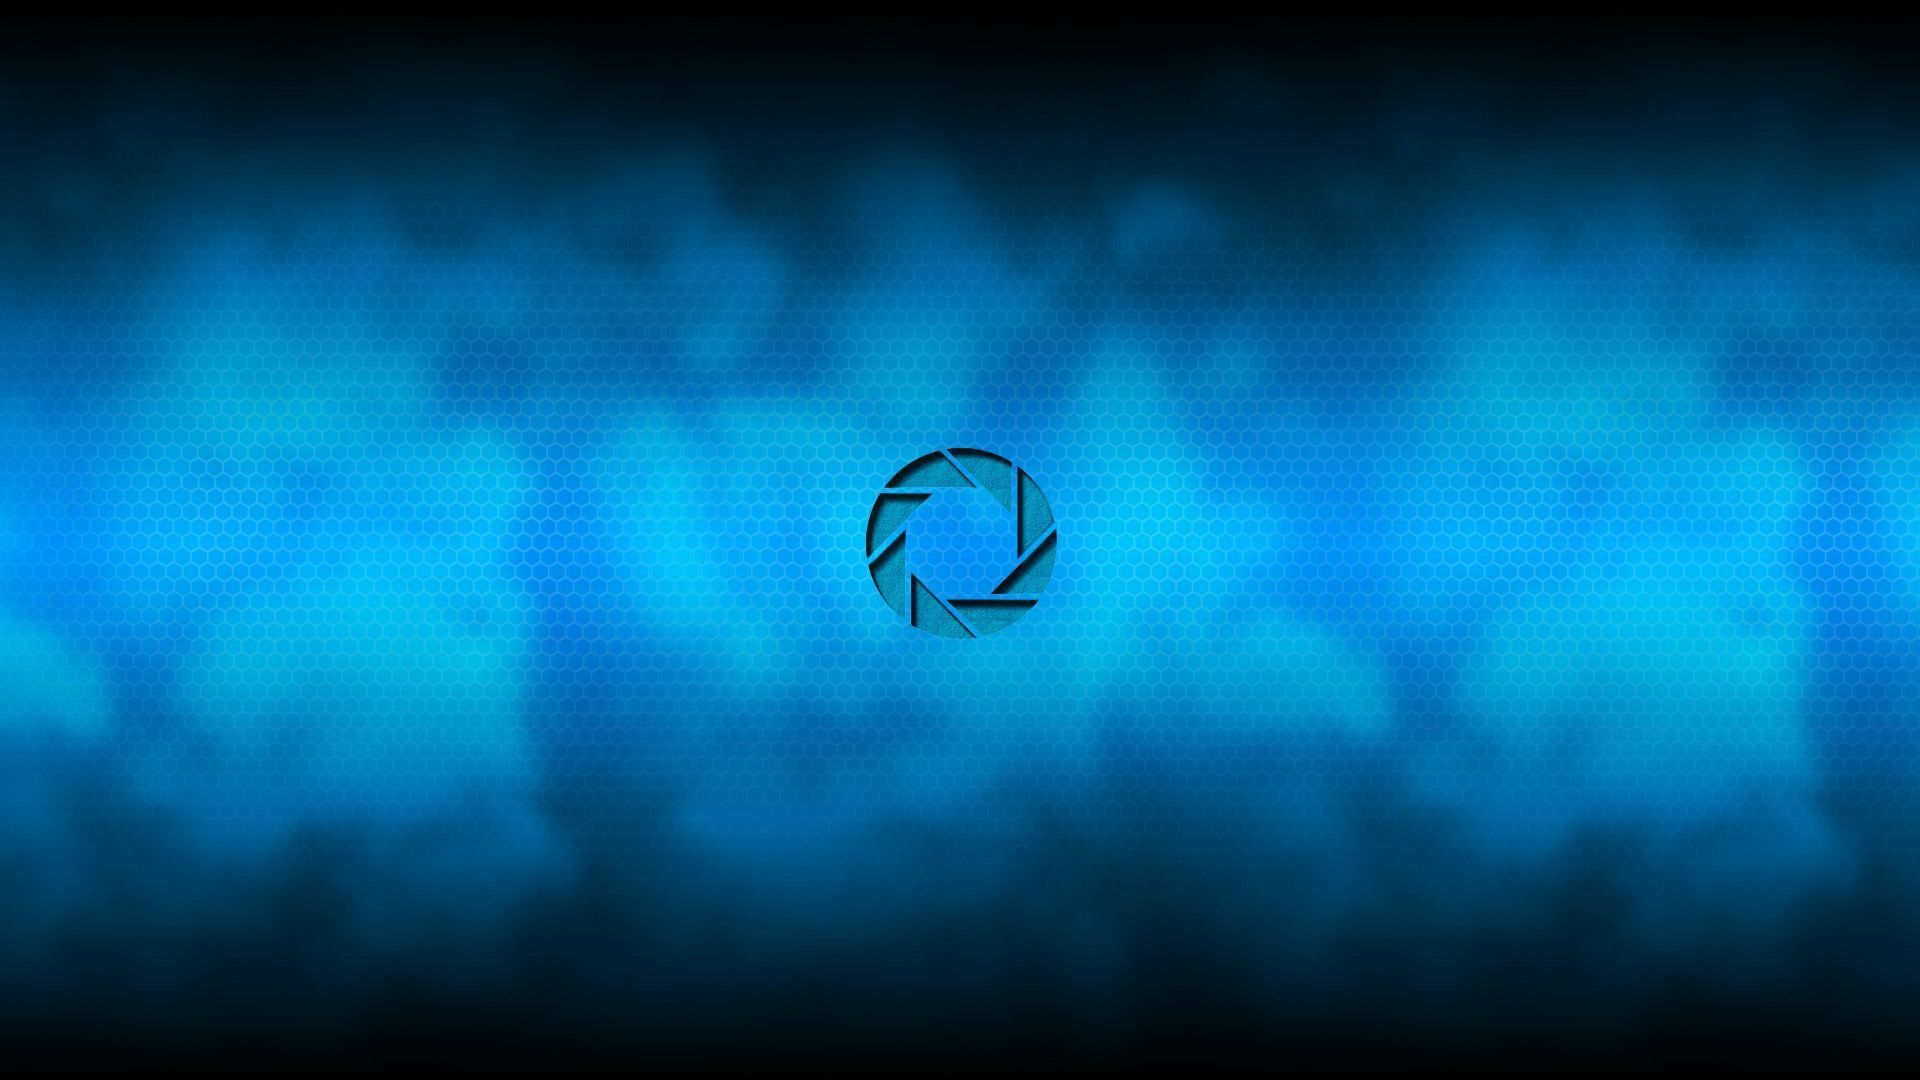 Aperture Science High Quality Wallpapers